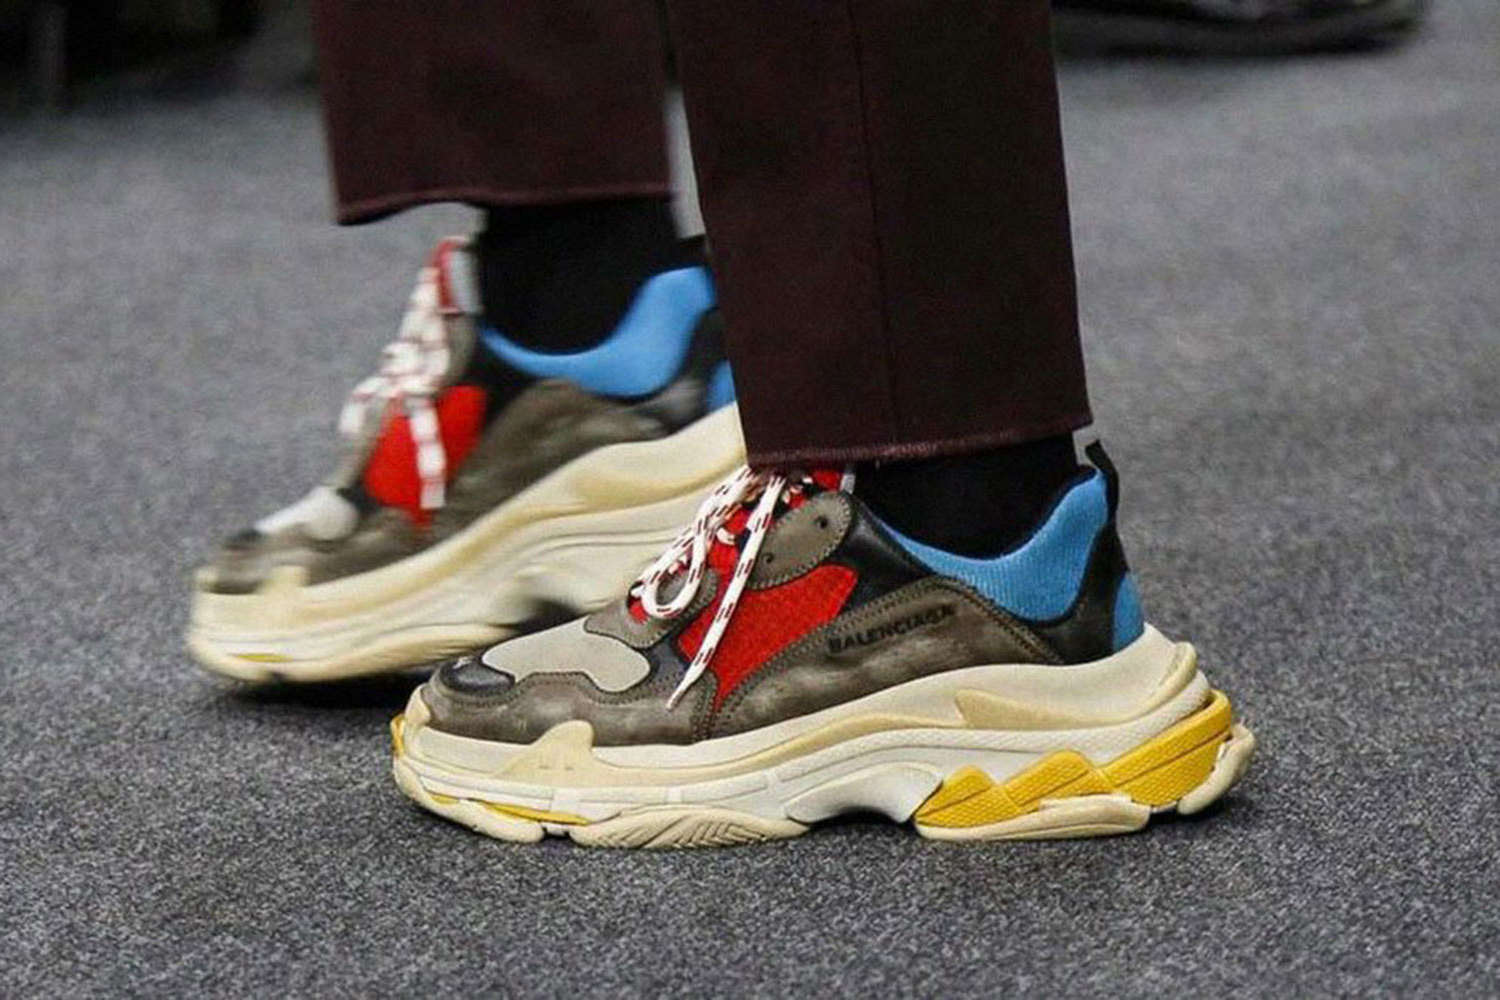 Ugly Sneaker für offizielles Outfit